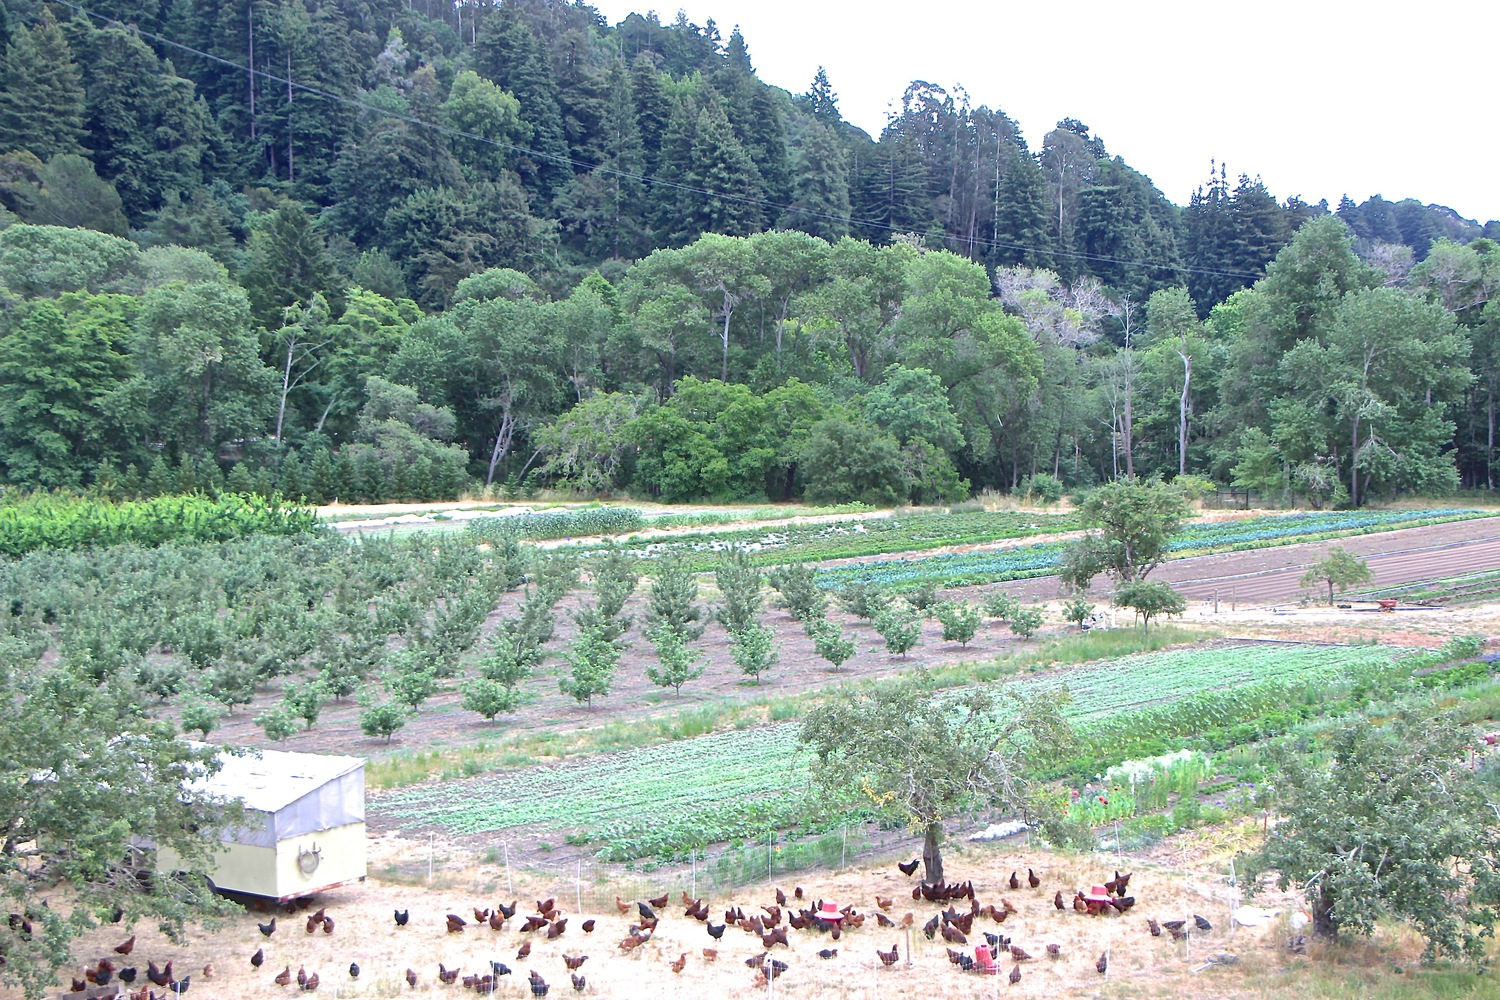 Rich and Laura's farm is right up the Soquel Valley and has a farm stand full of fresh produce.